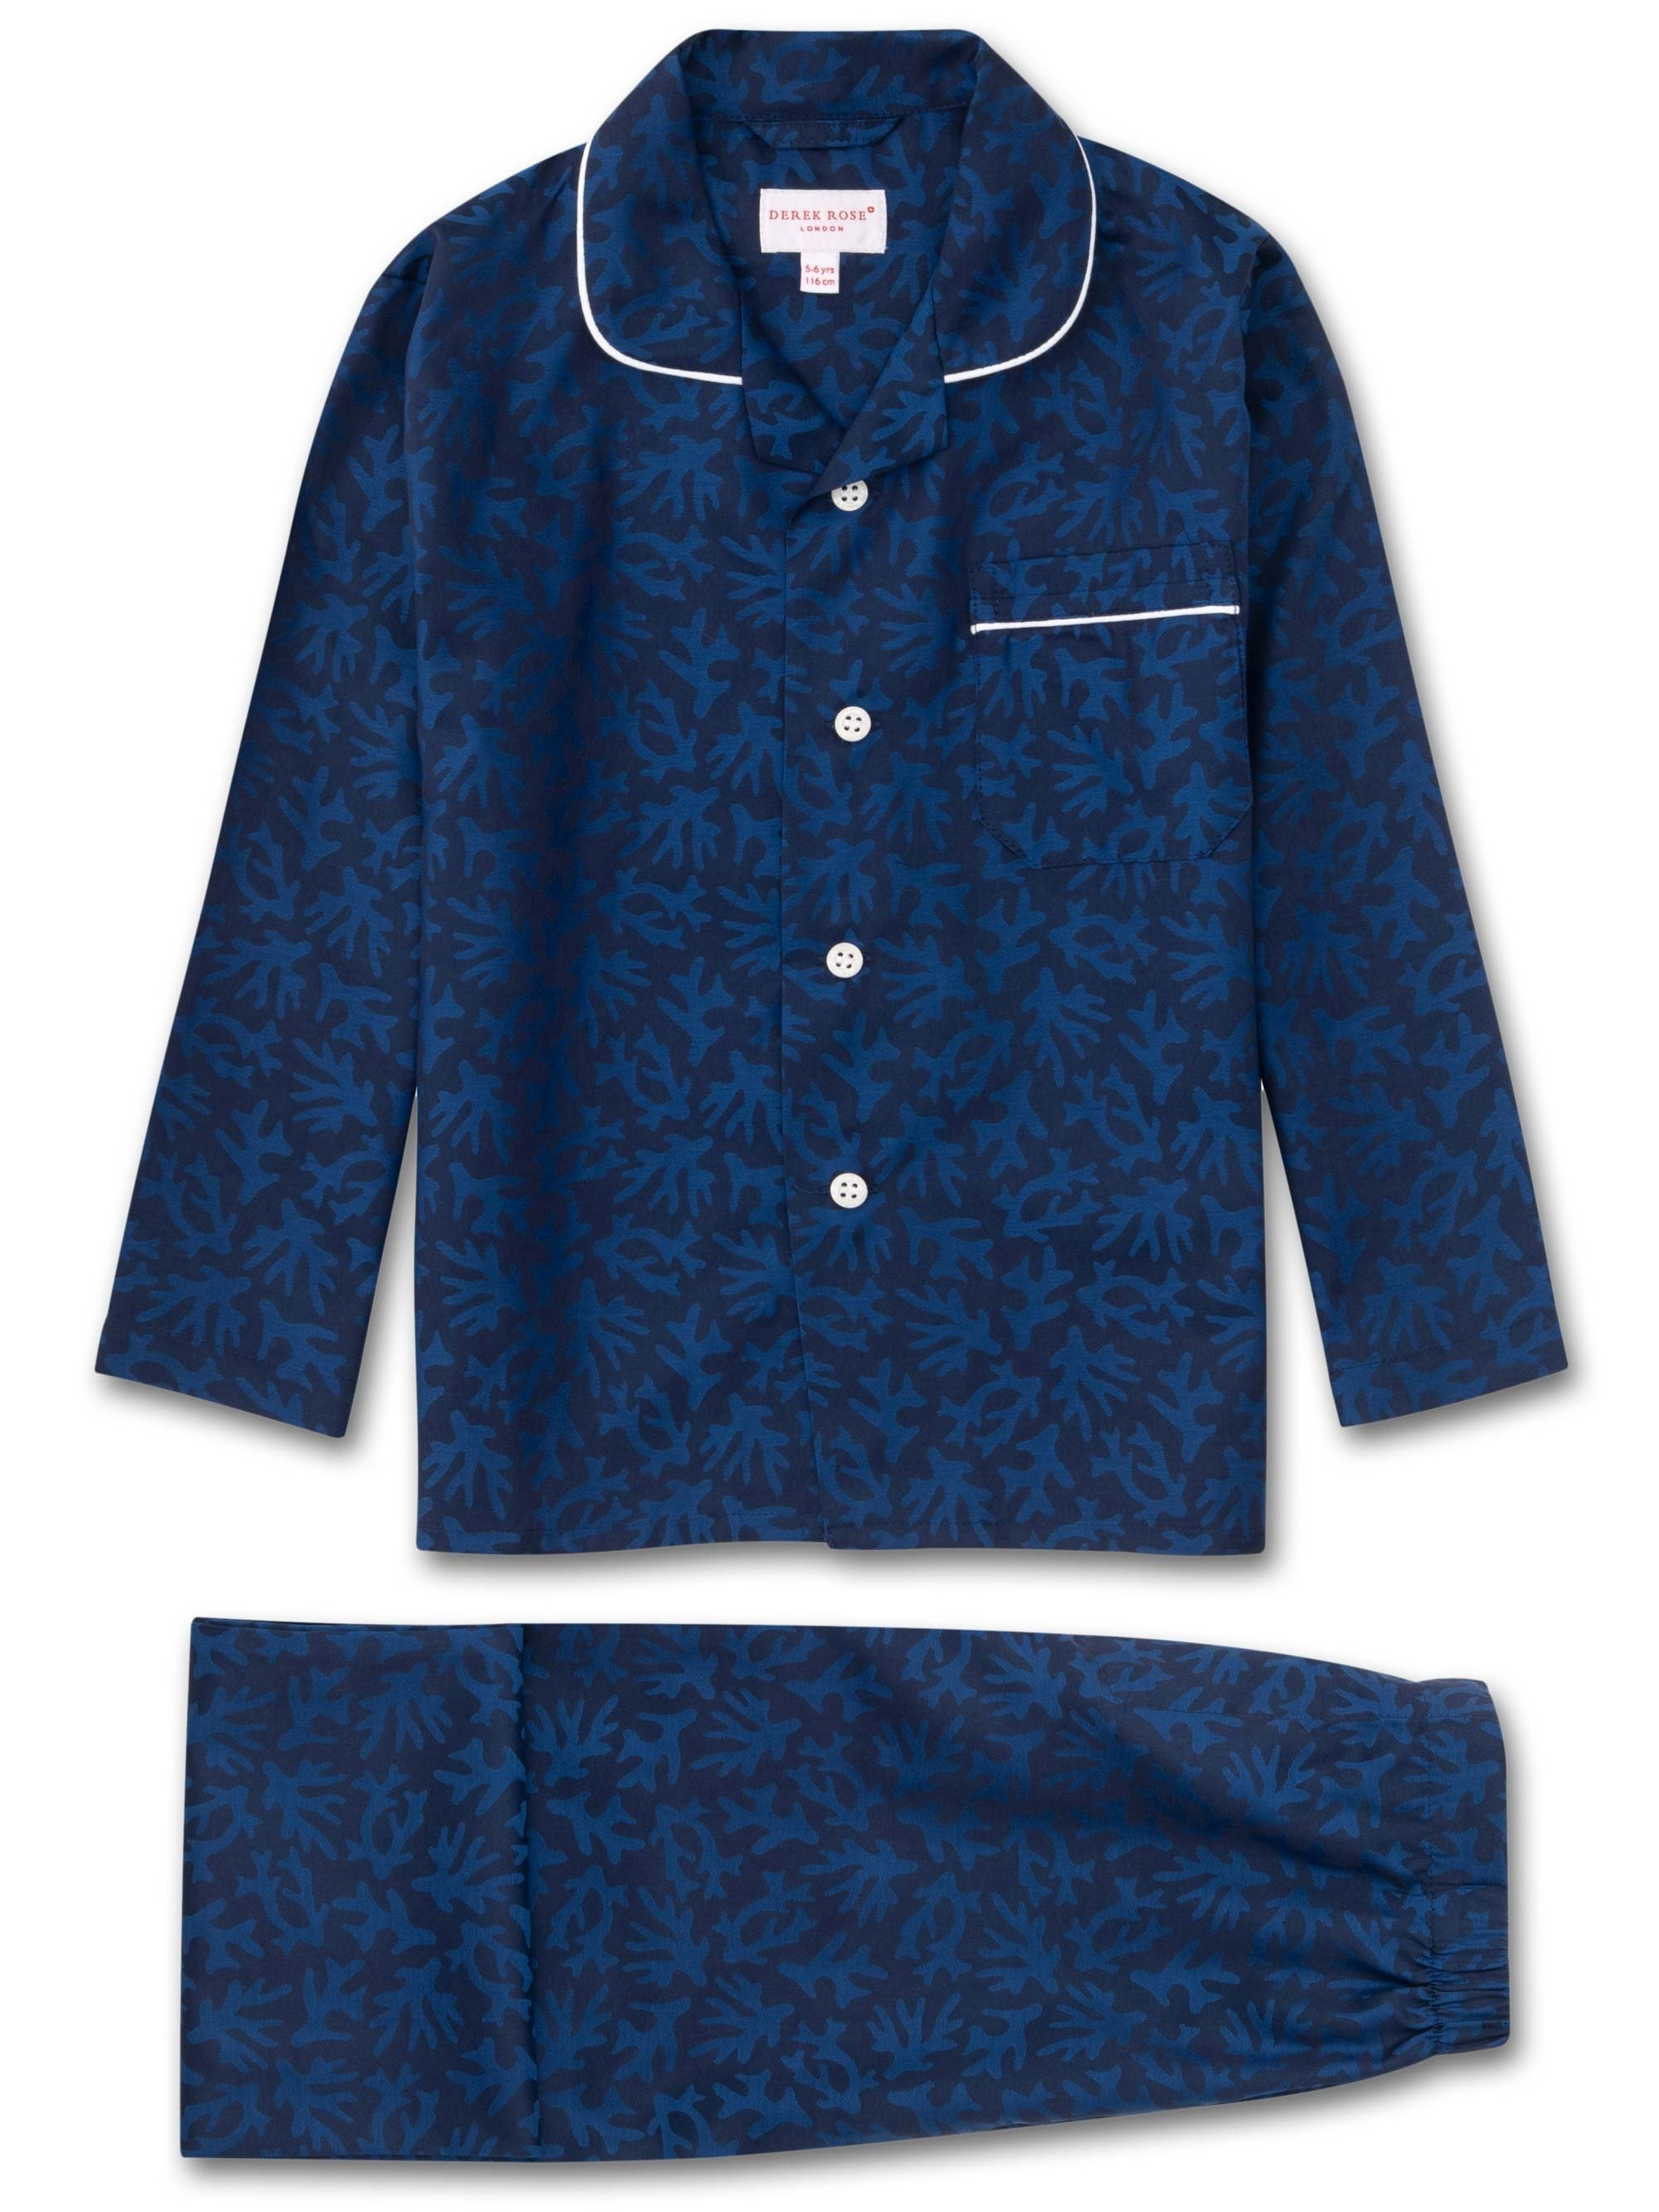 Kids' Pyjamas Paris 16 Cotton Jacquard Navy